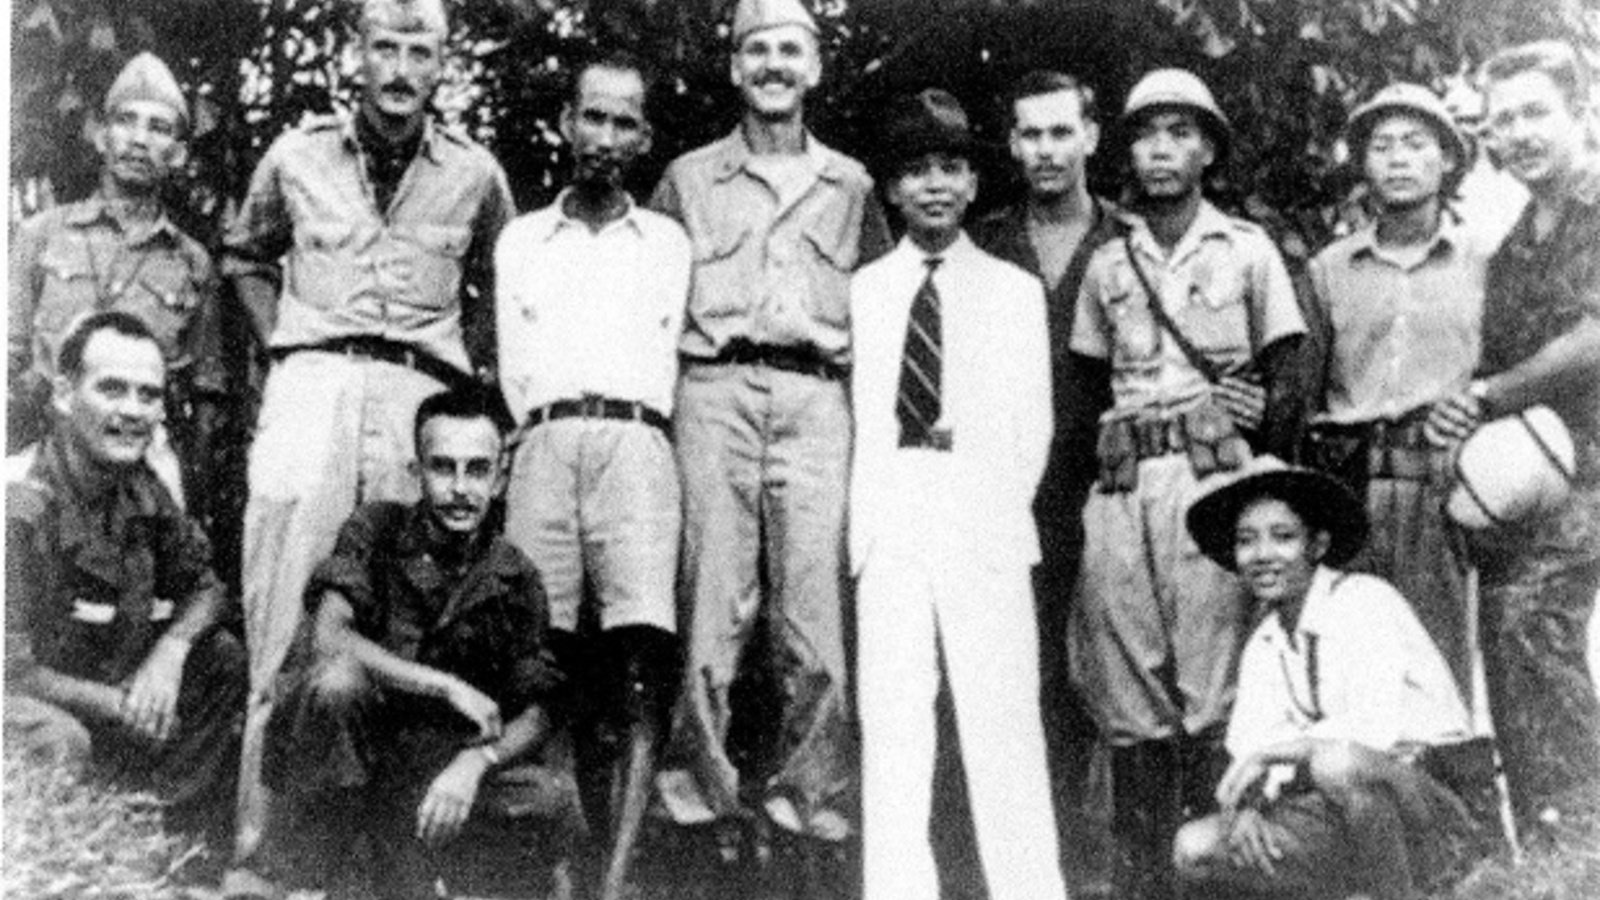 Group of American soldiers posing with 2 Indonesian men